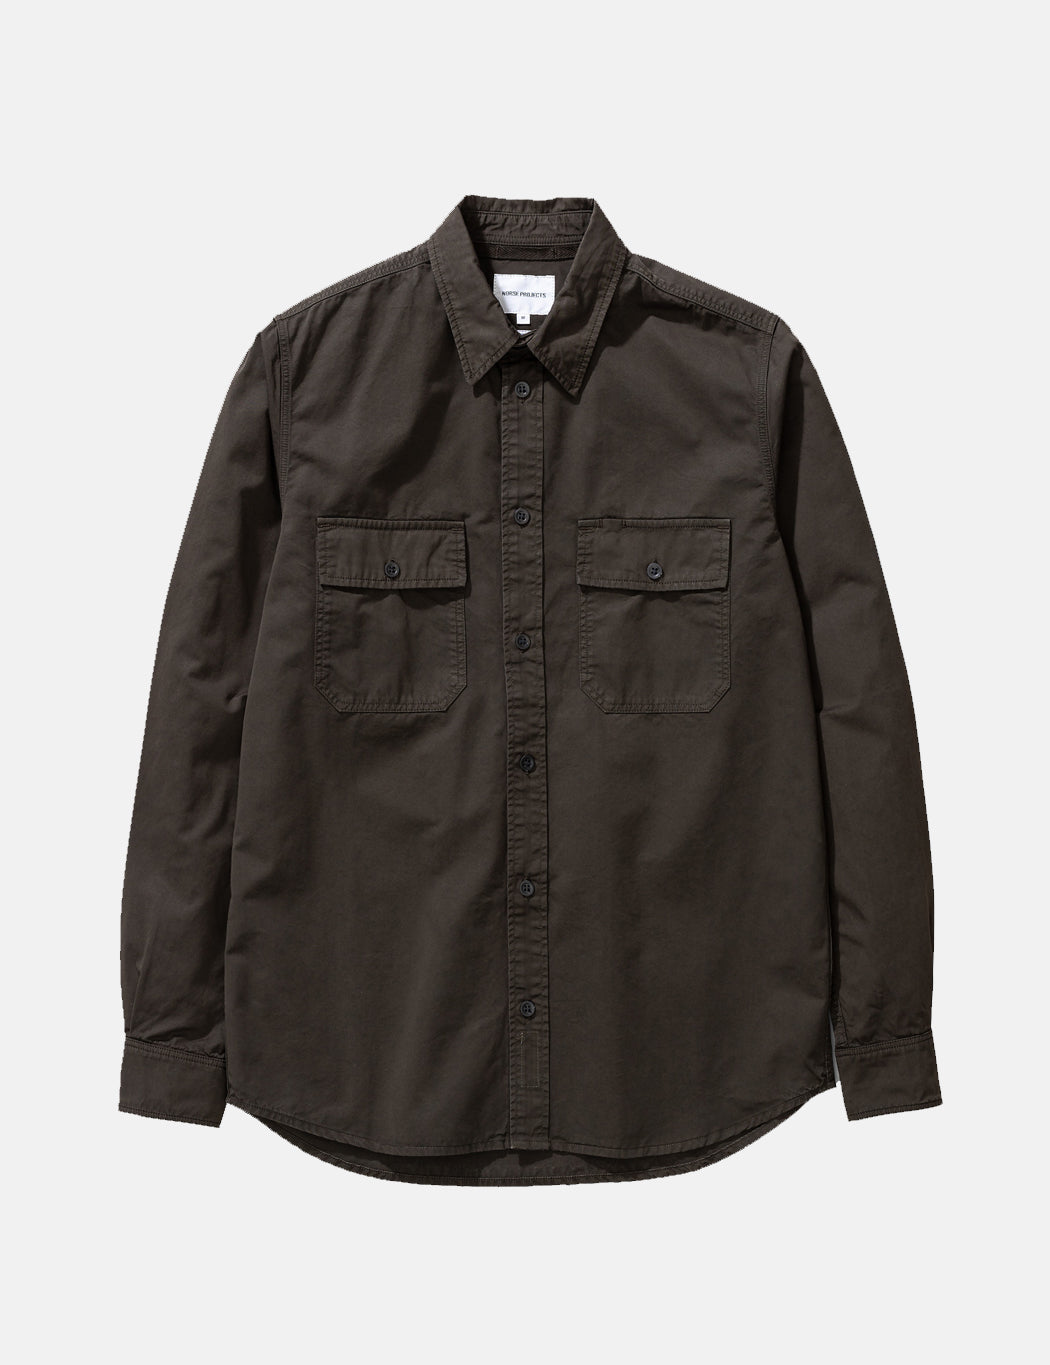 Norse Projects Villads Light Twill Overshirt - Green | URBAN EXCESS.